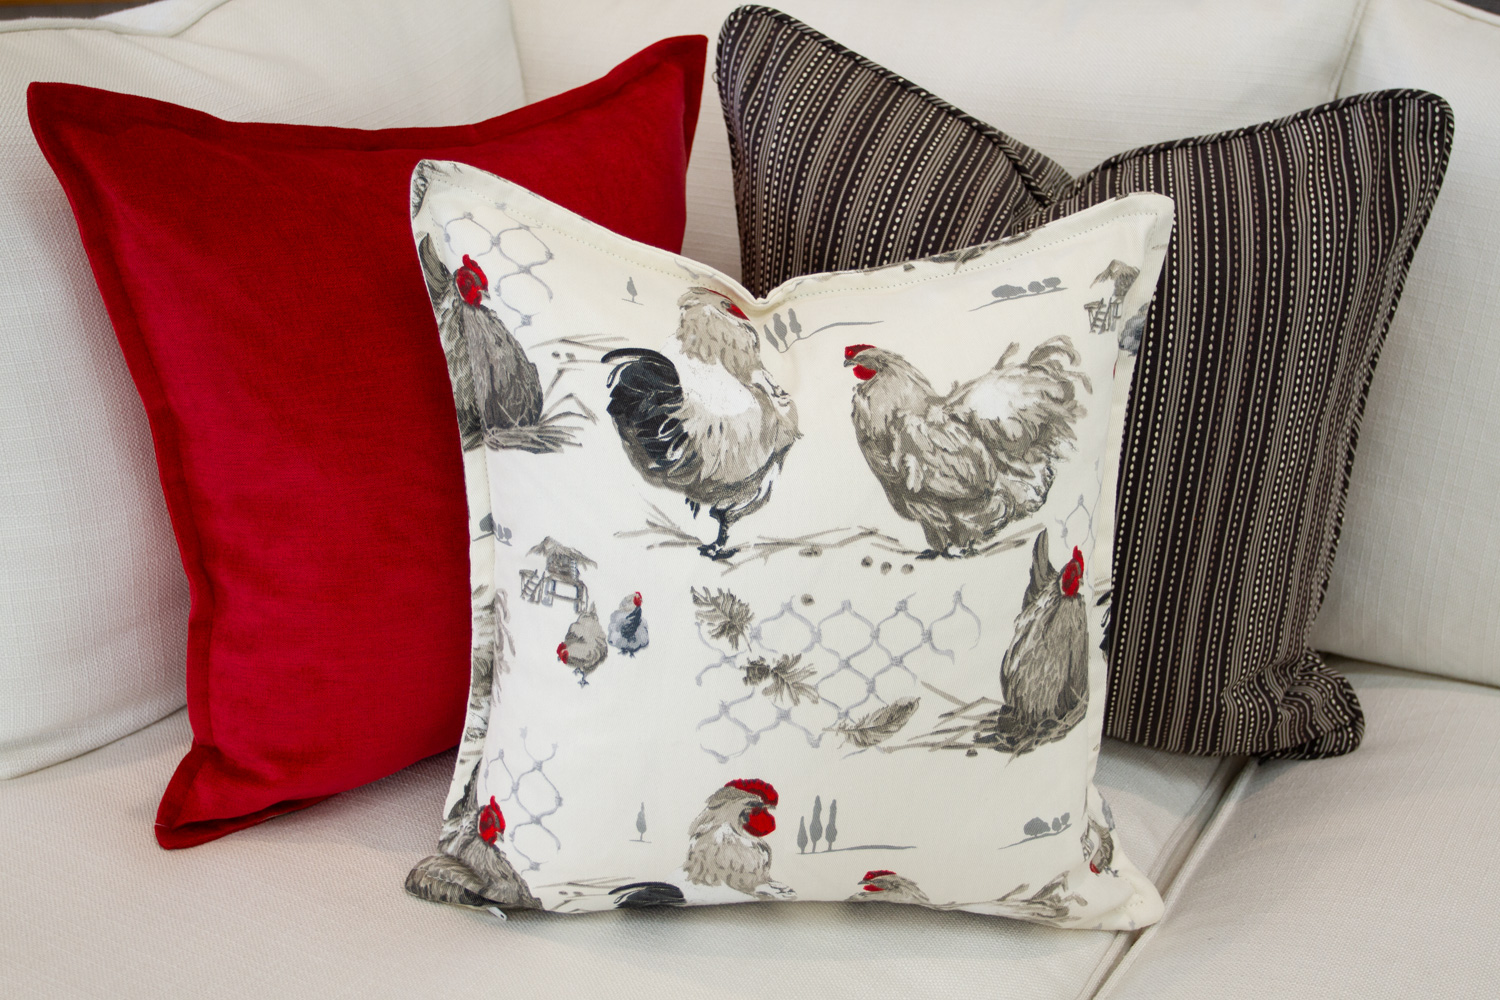 Chameleon Style 12 Days Of Pillows 2018 Rooster Country Day 3 Chameleon Style